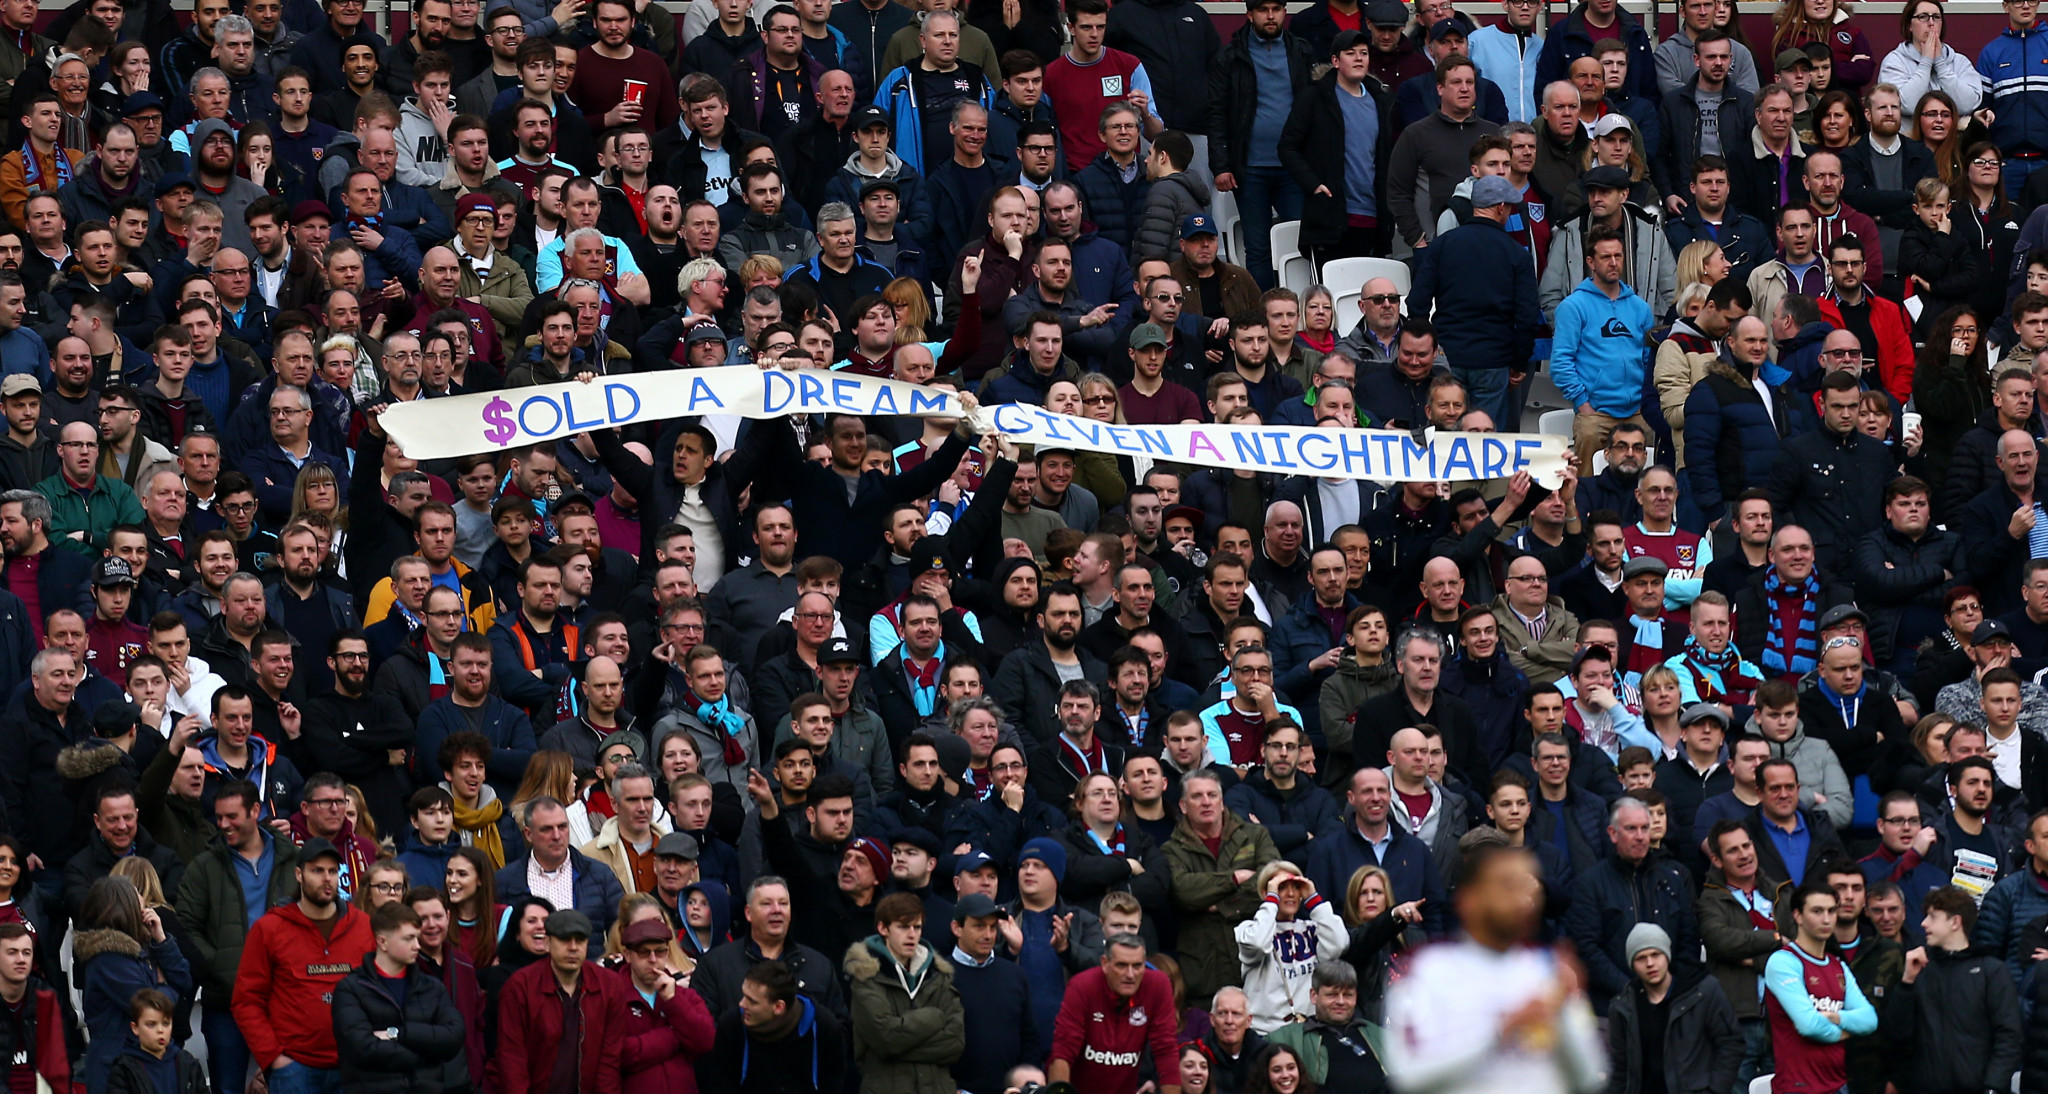 West Ham United fans protested about the Olympic Stadium during a match against Burnley earlier this month ©Getty Images